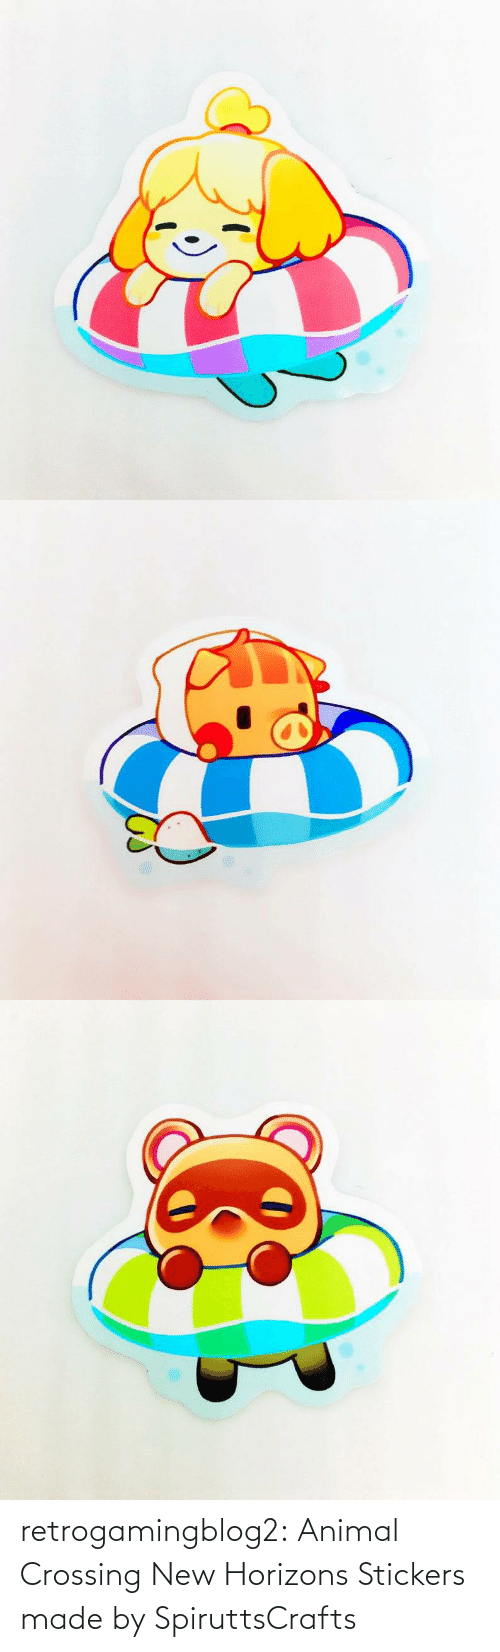 Deviantart: retrogamingblog2:  Animal Crossing New Horizons Stickers made by SpiruttsCrafts